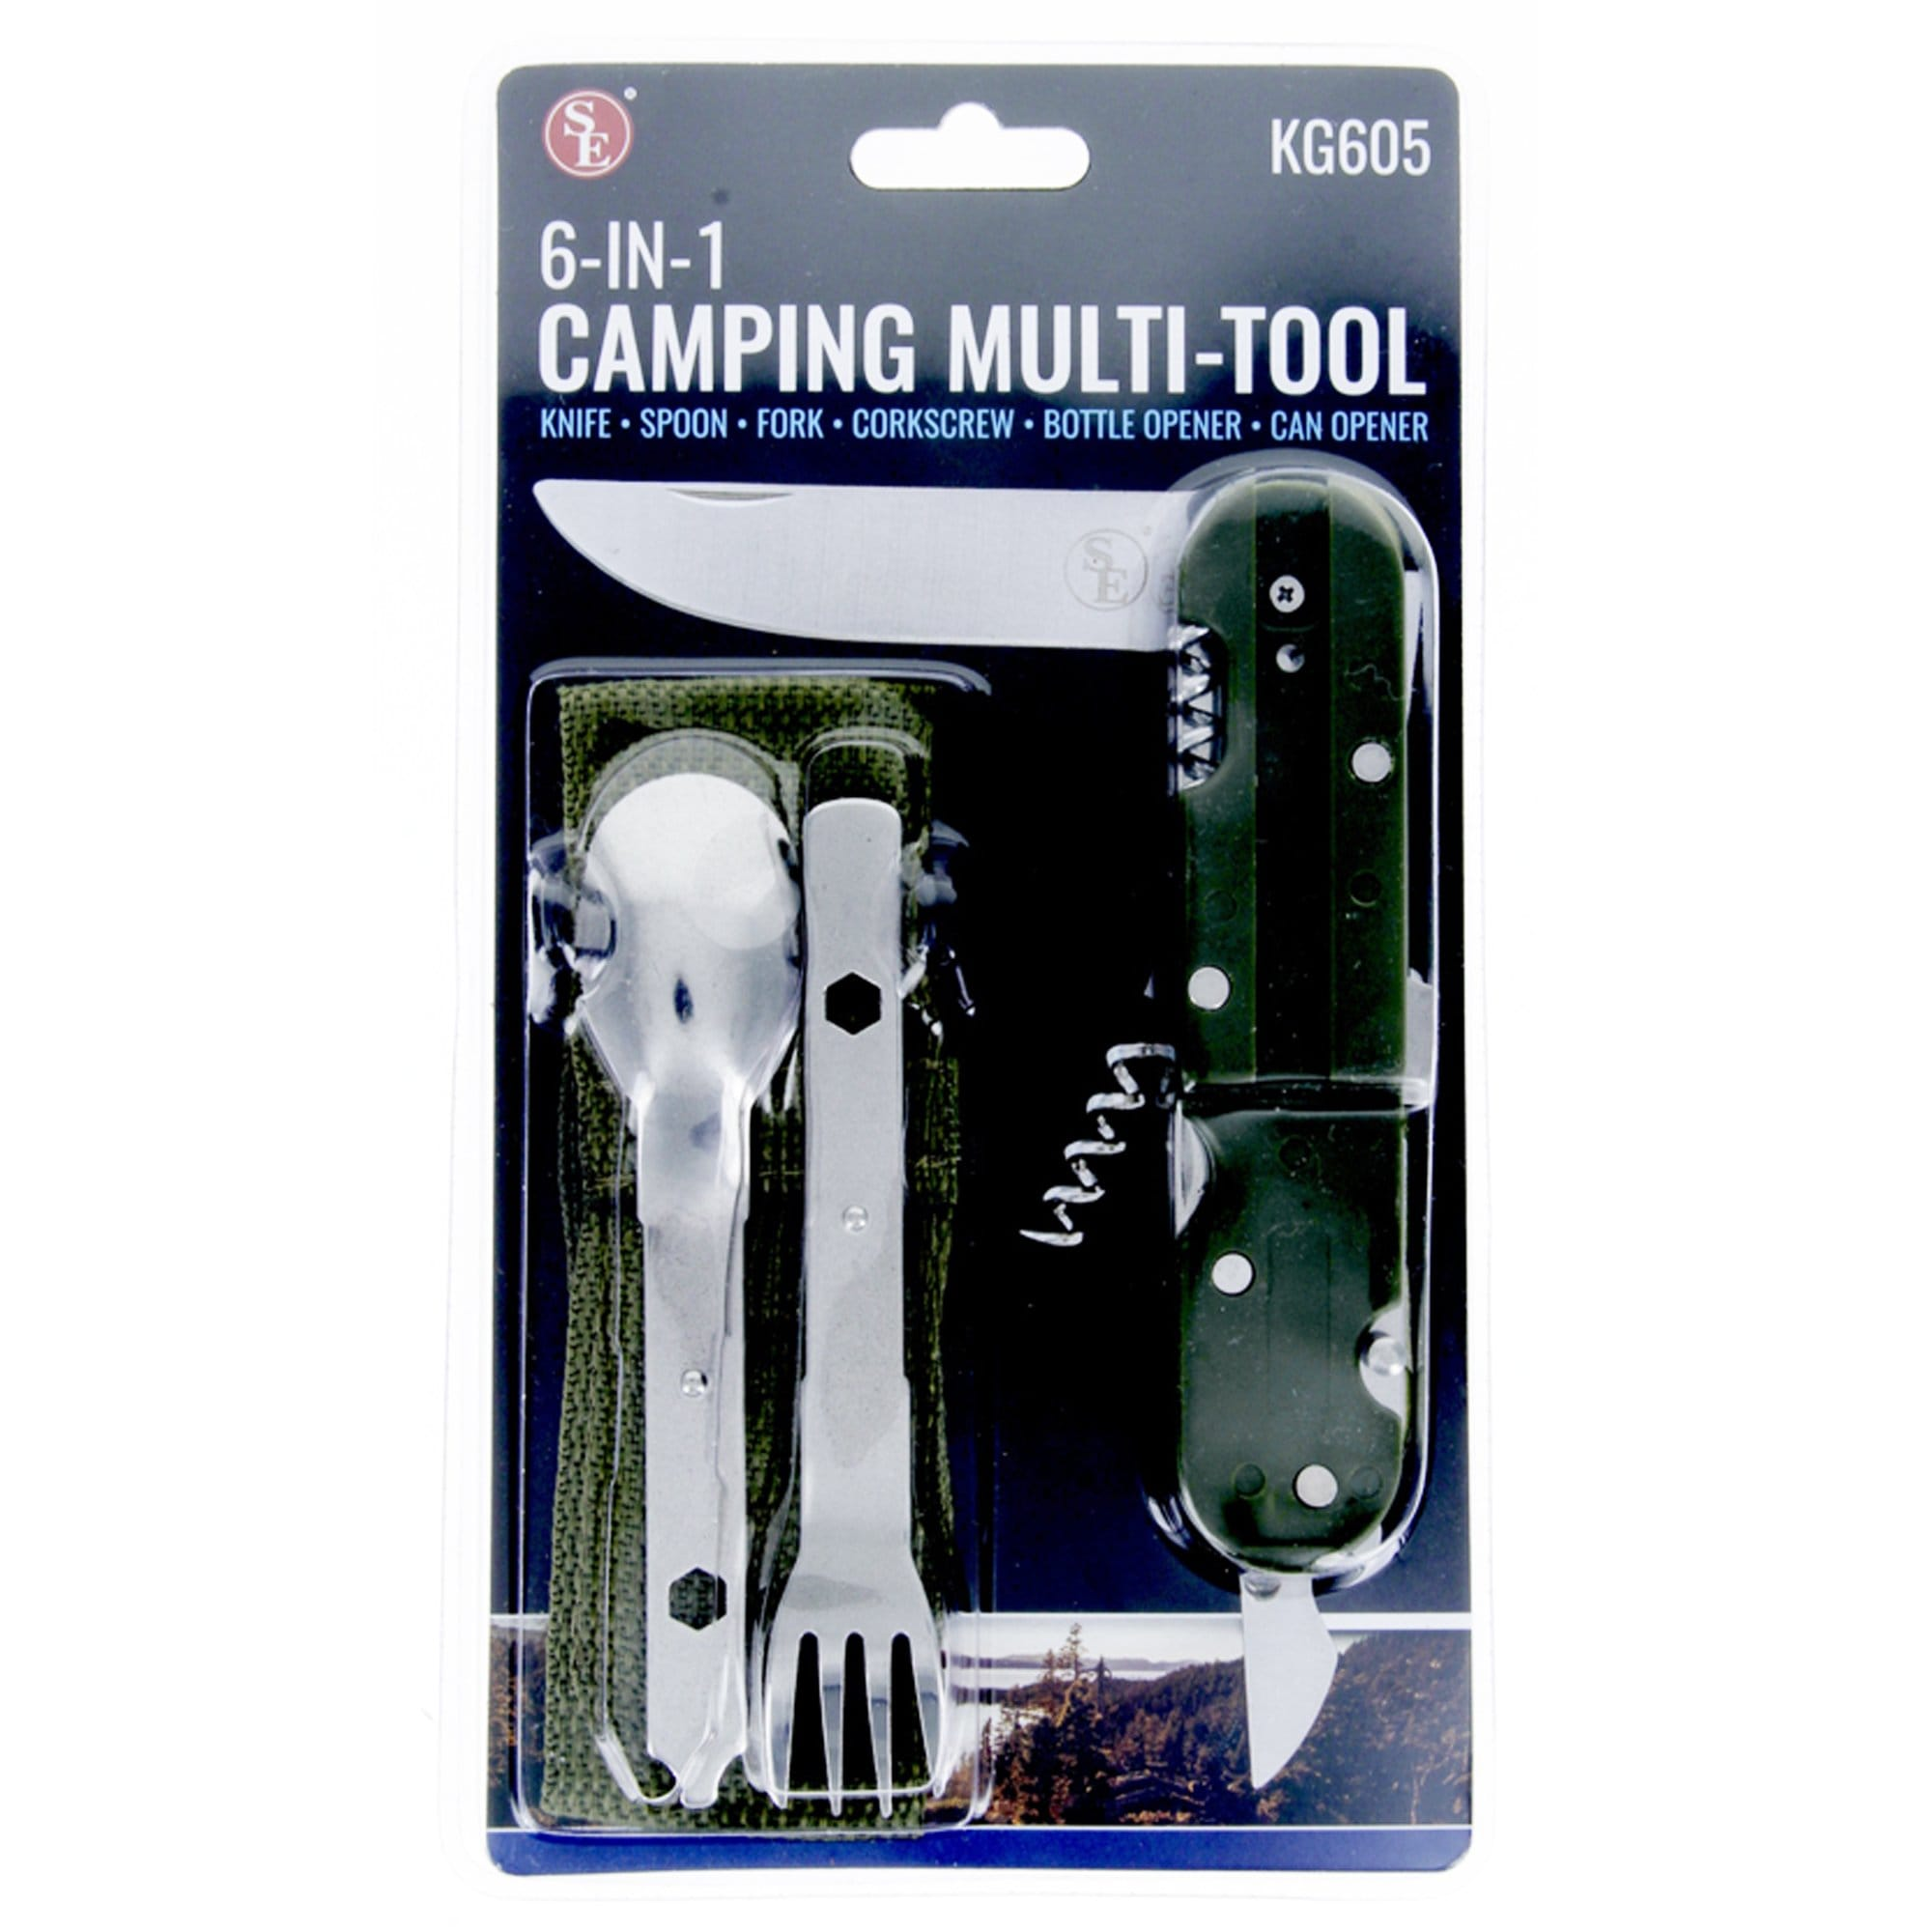 6-IN-1 Tool Kit - Camping Multi Tool